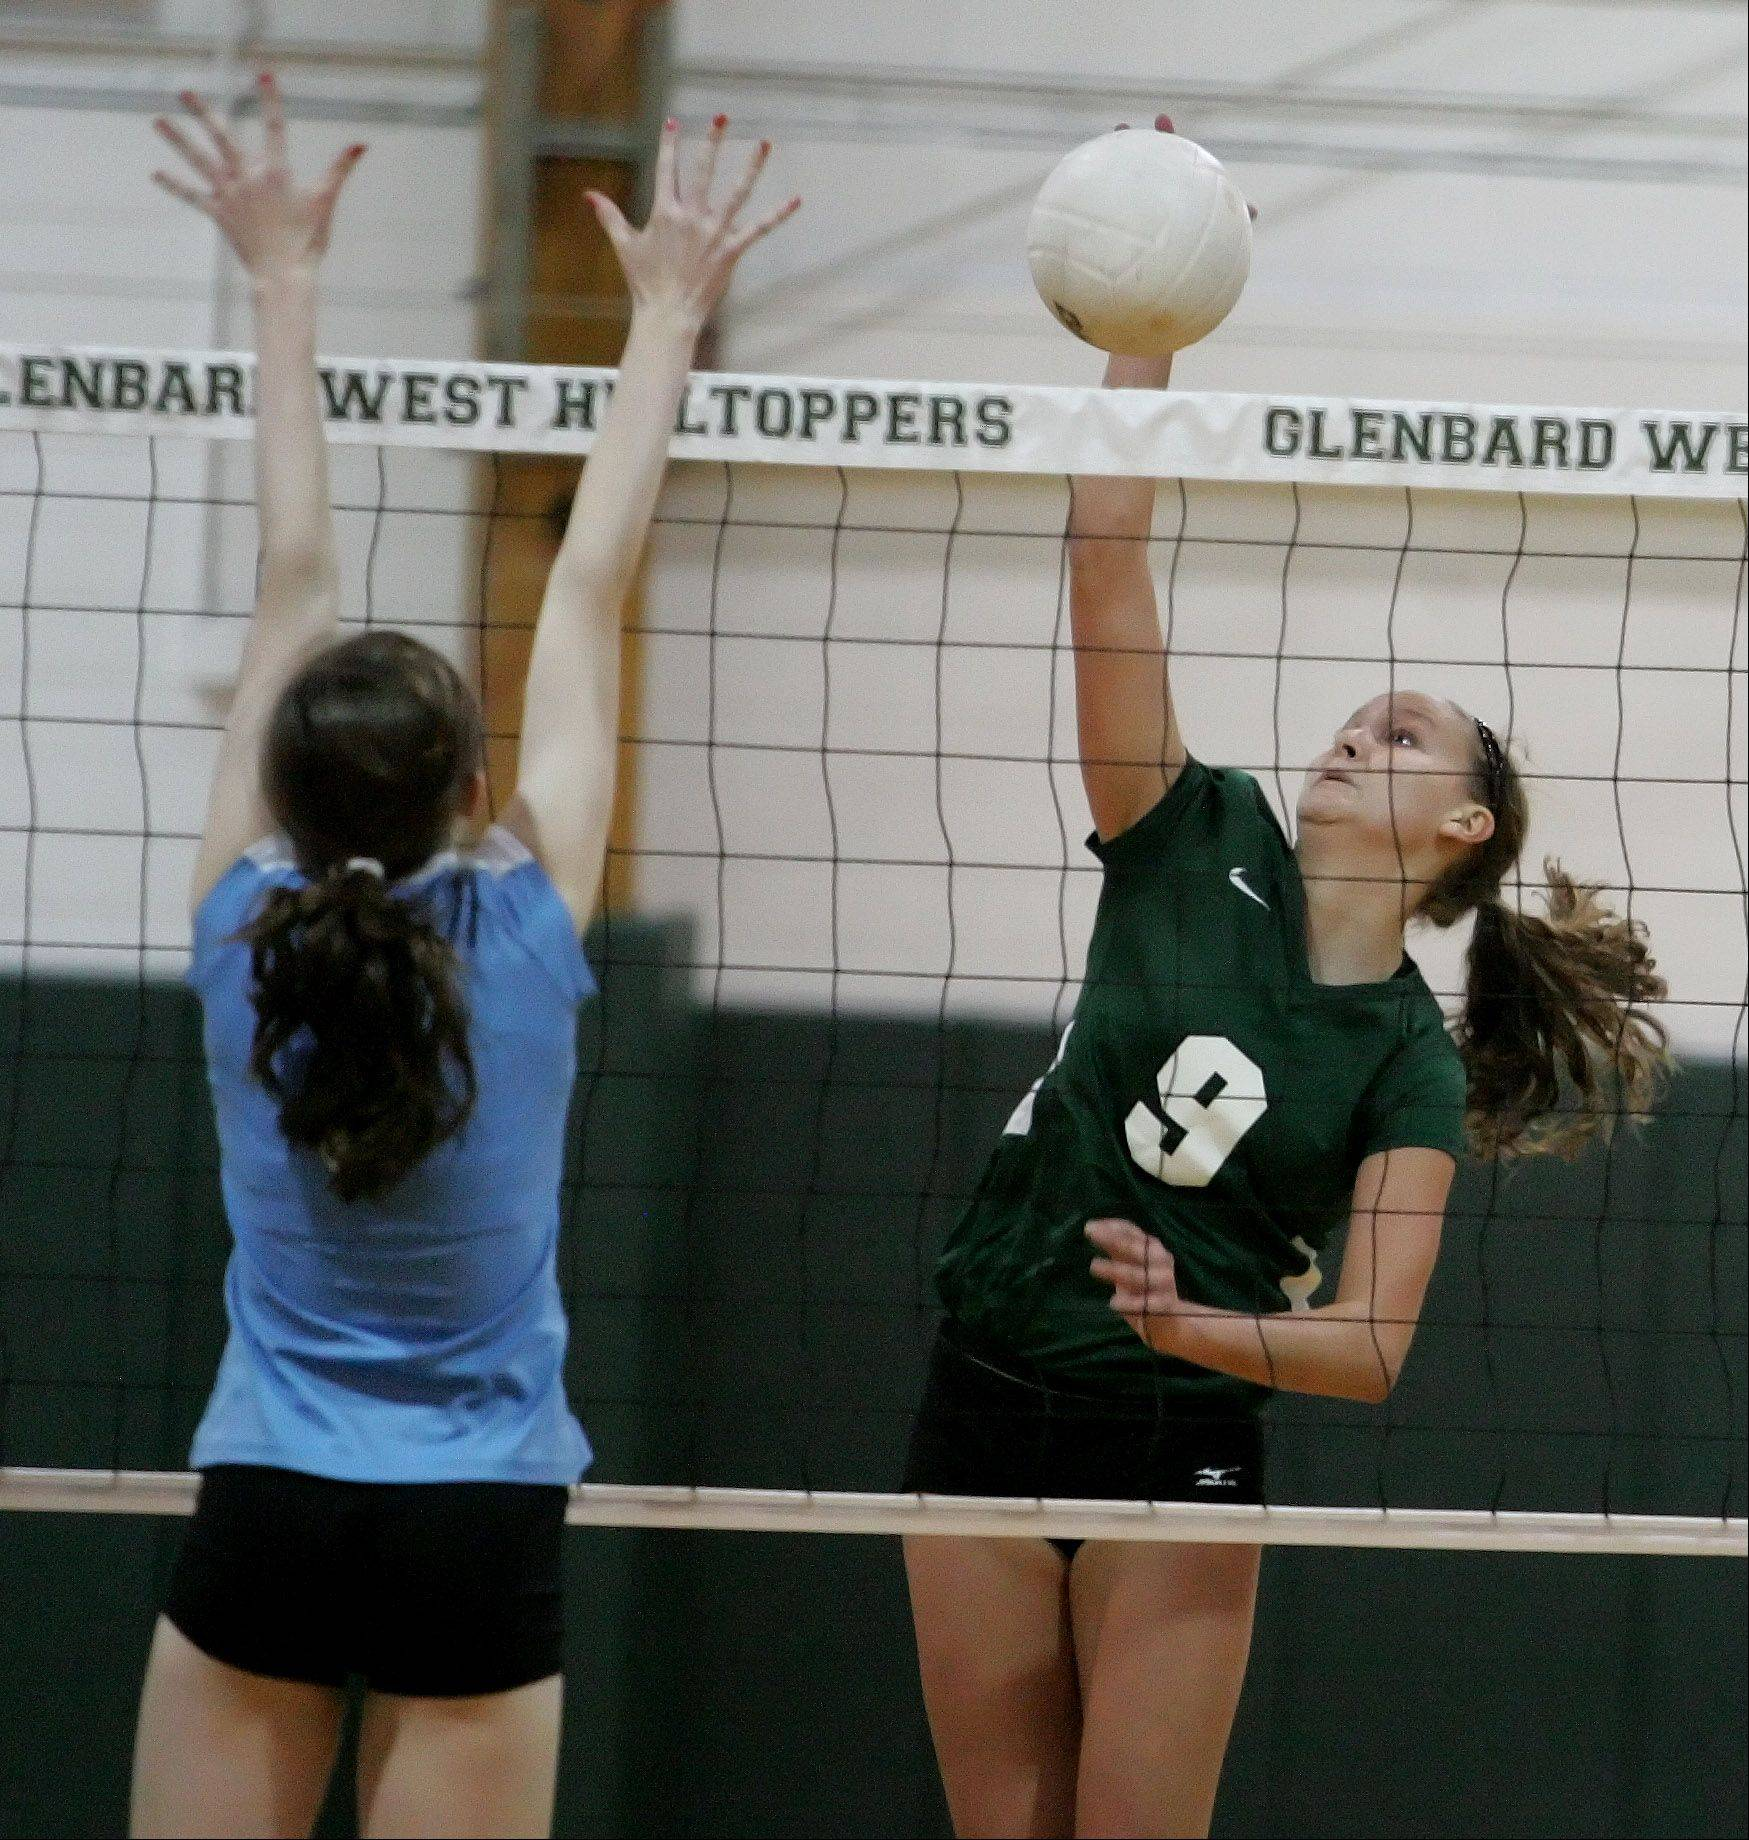 Amanda Perry of Glenbard West spikes the ball in girls volleyball action against Willowbrook on Monday in Glen Ellyn.